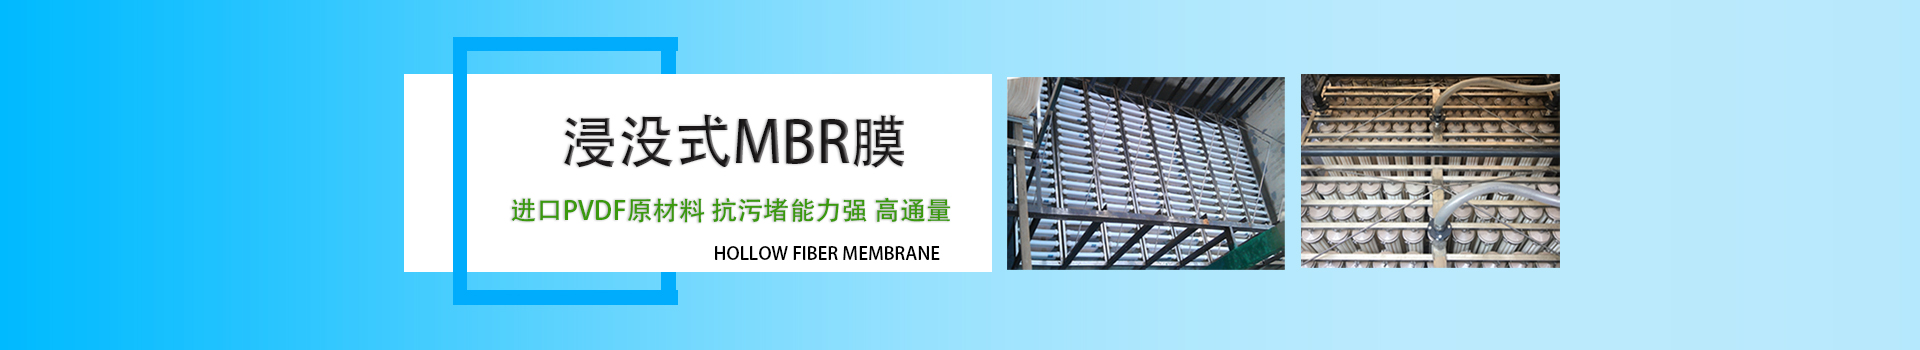 MBR膜banner图原稿最新